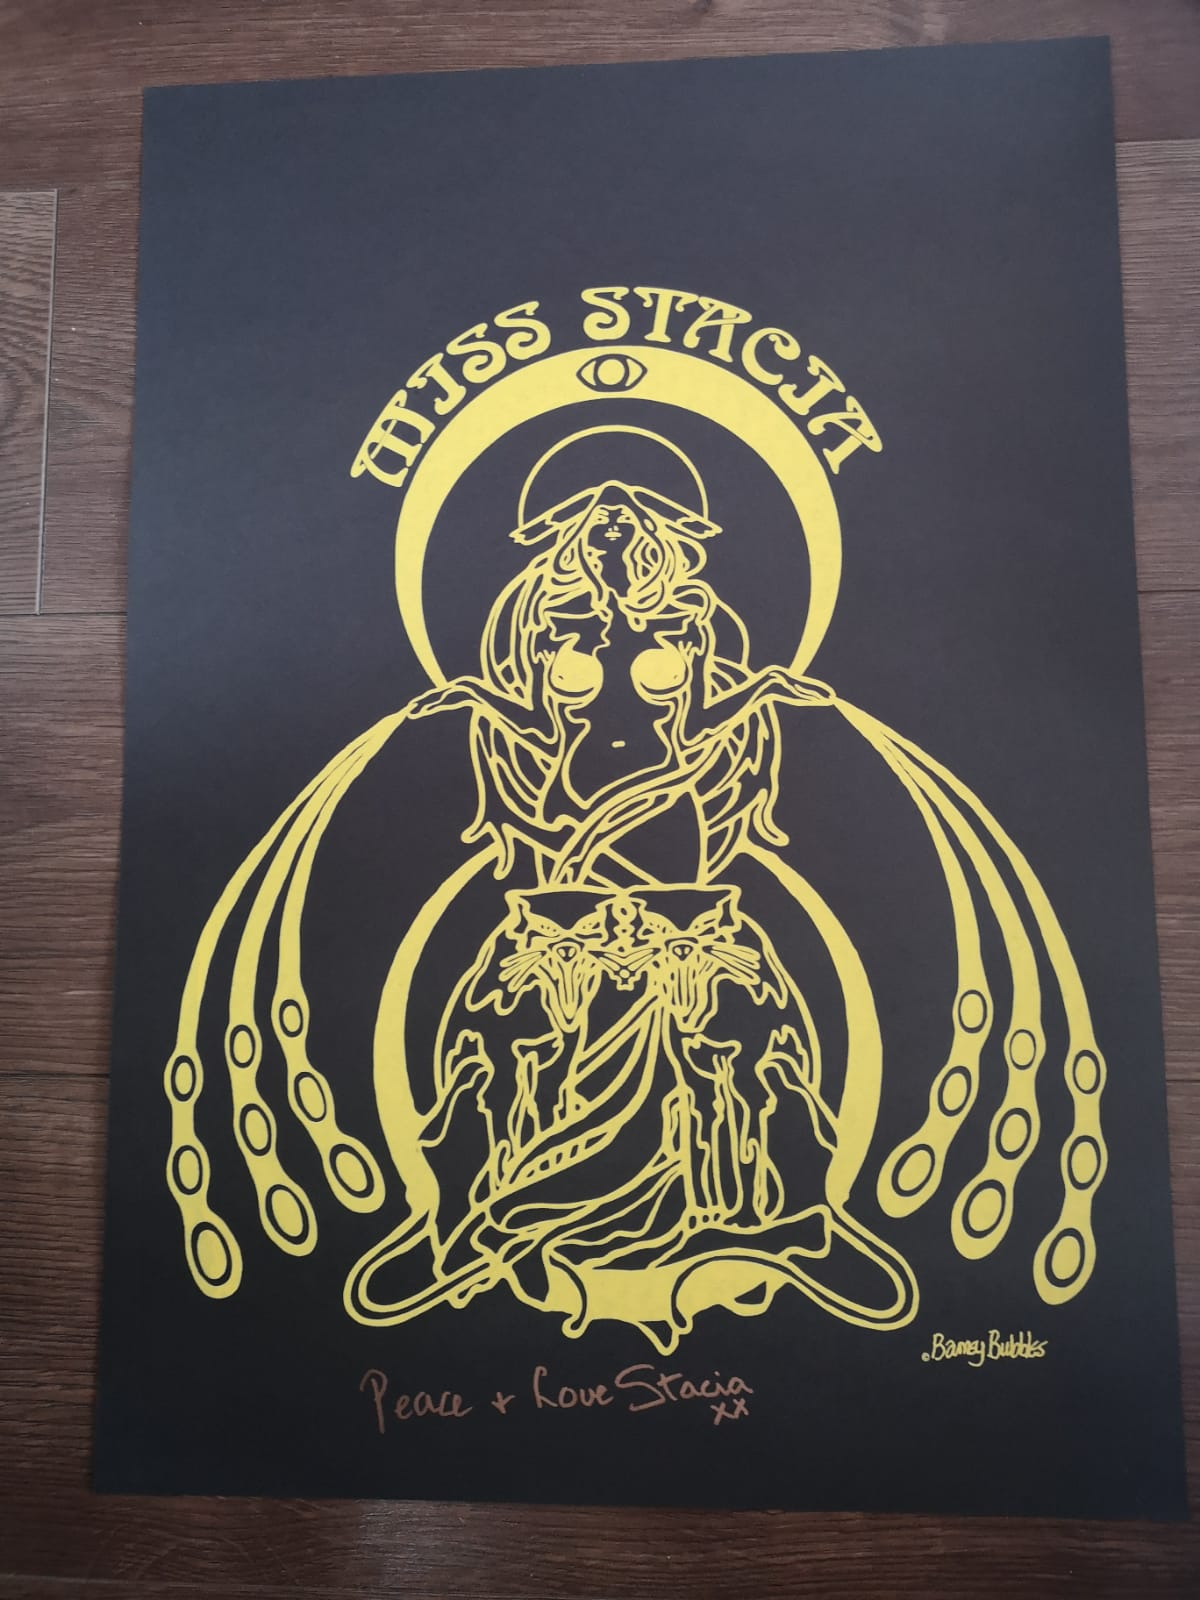 Image of 'Miss Stacia' Poster - Barney Bubbles Design (Hawkwind)